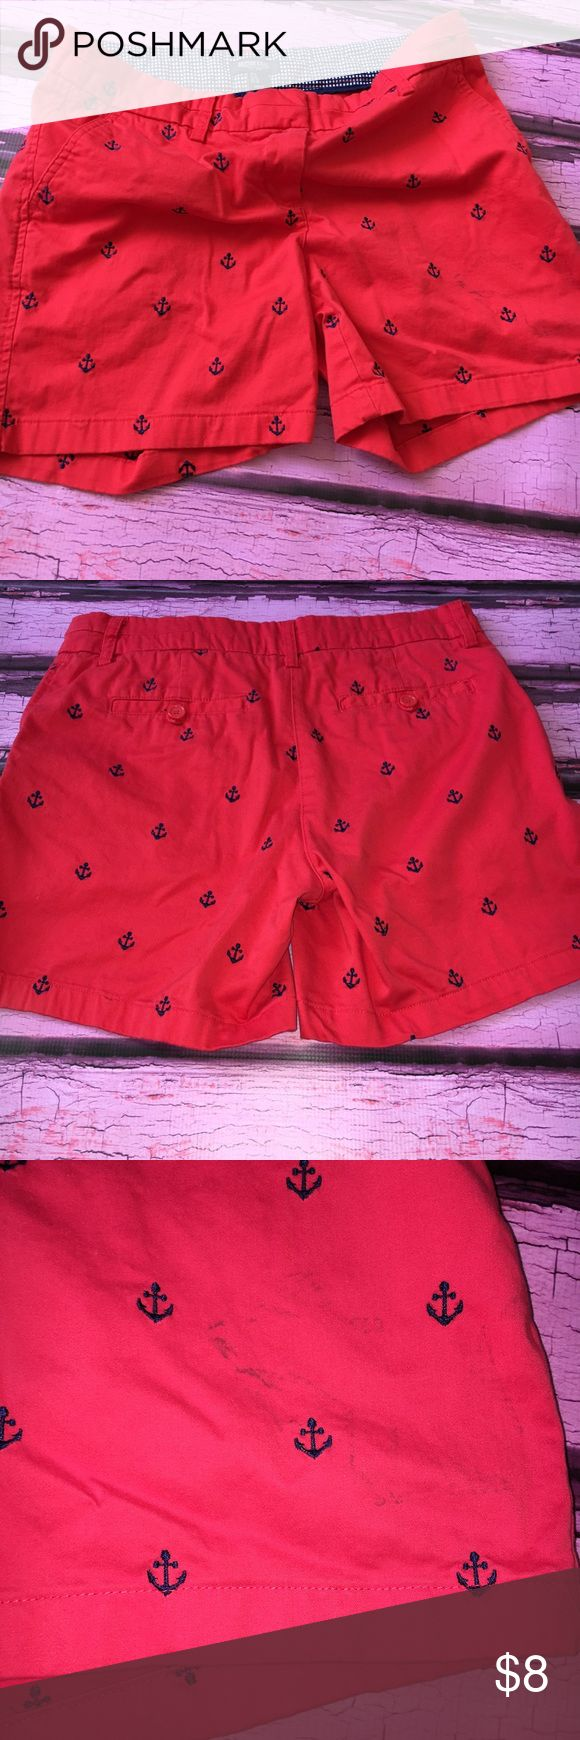 British Khaki Red Shorts W/ Navy Anchors The shorts are really cute, and a great shade of red. Very light fading. The left side portion of the short has some black stains where I inadvertently rubbed against my car, and could not get it off. For some knock around shorts, these are perfect. Throw them on top of your bikini and head off to the beach. Bundle and save. British Khaki Shorts